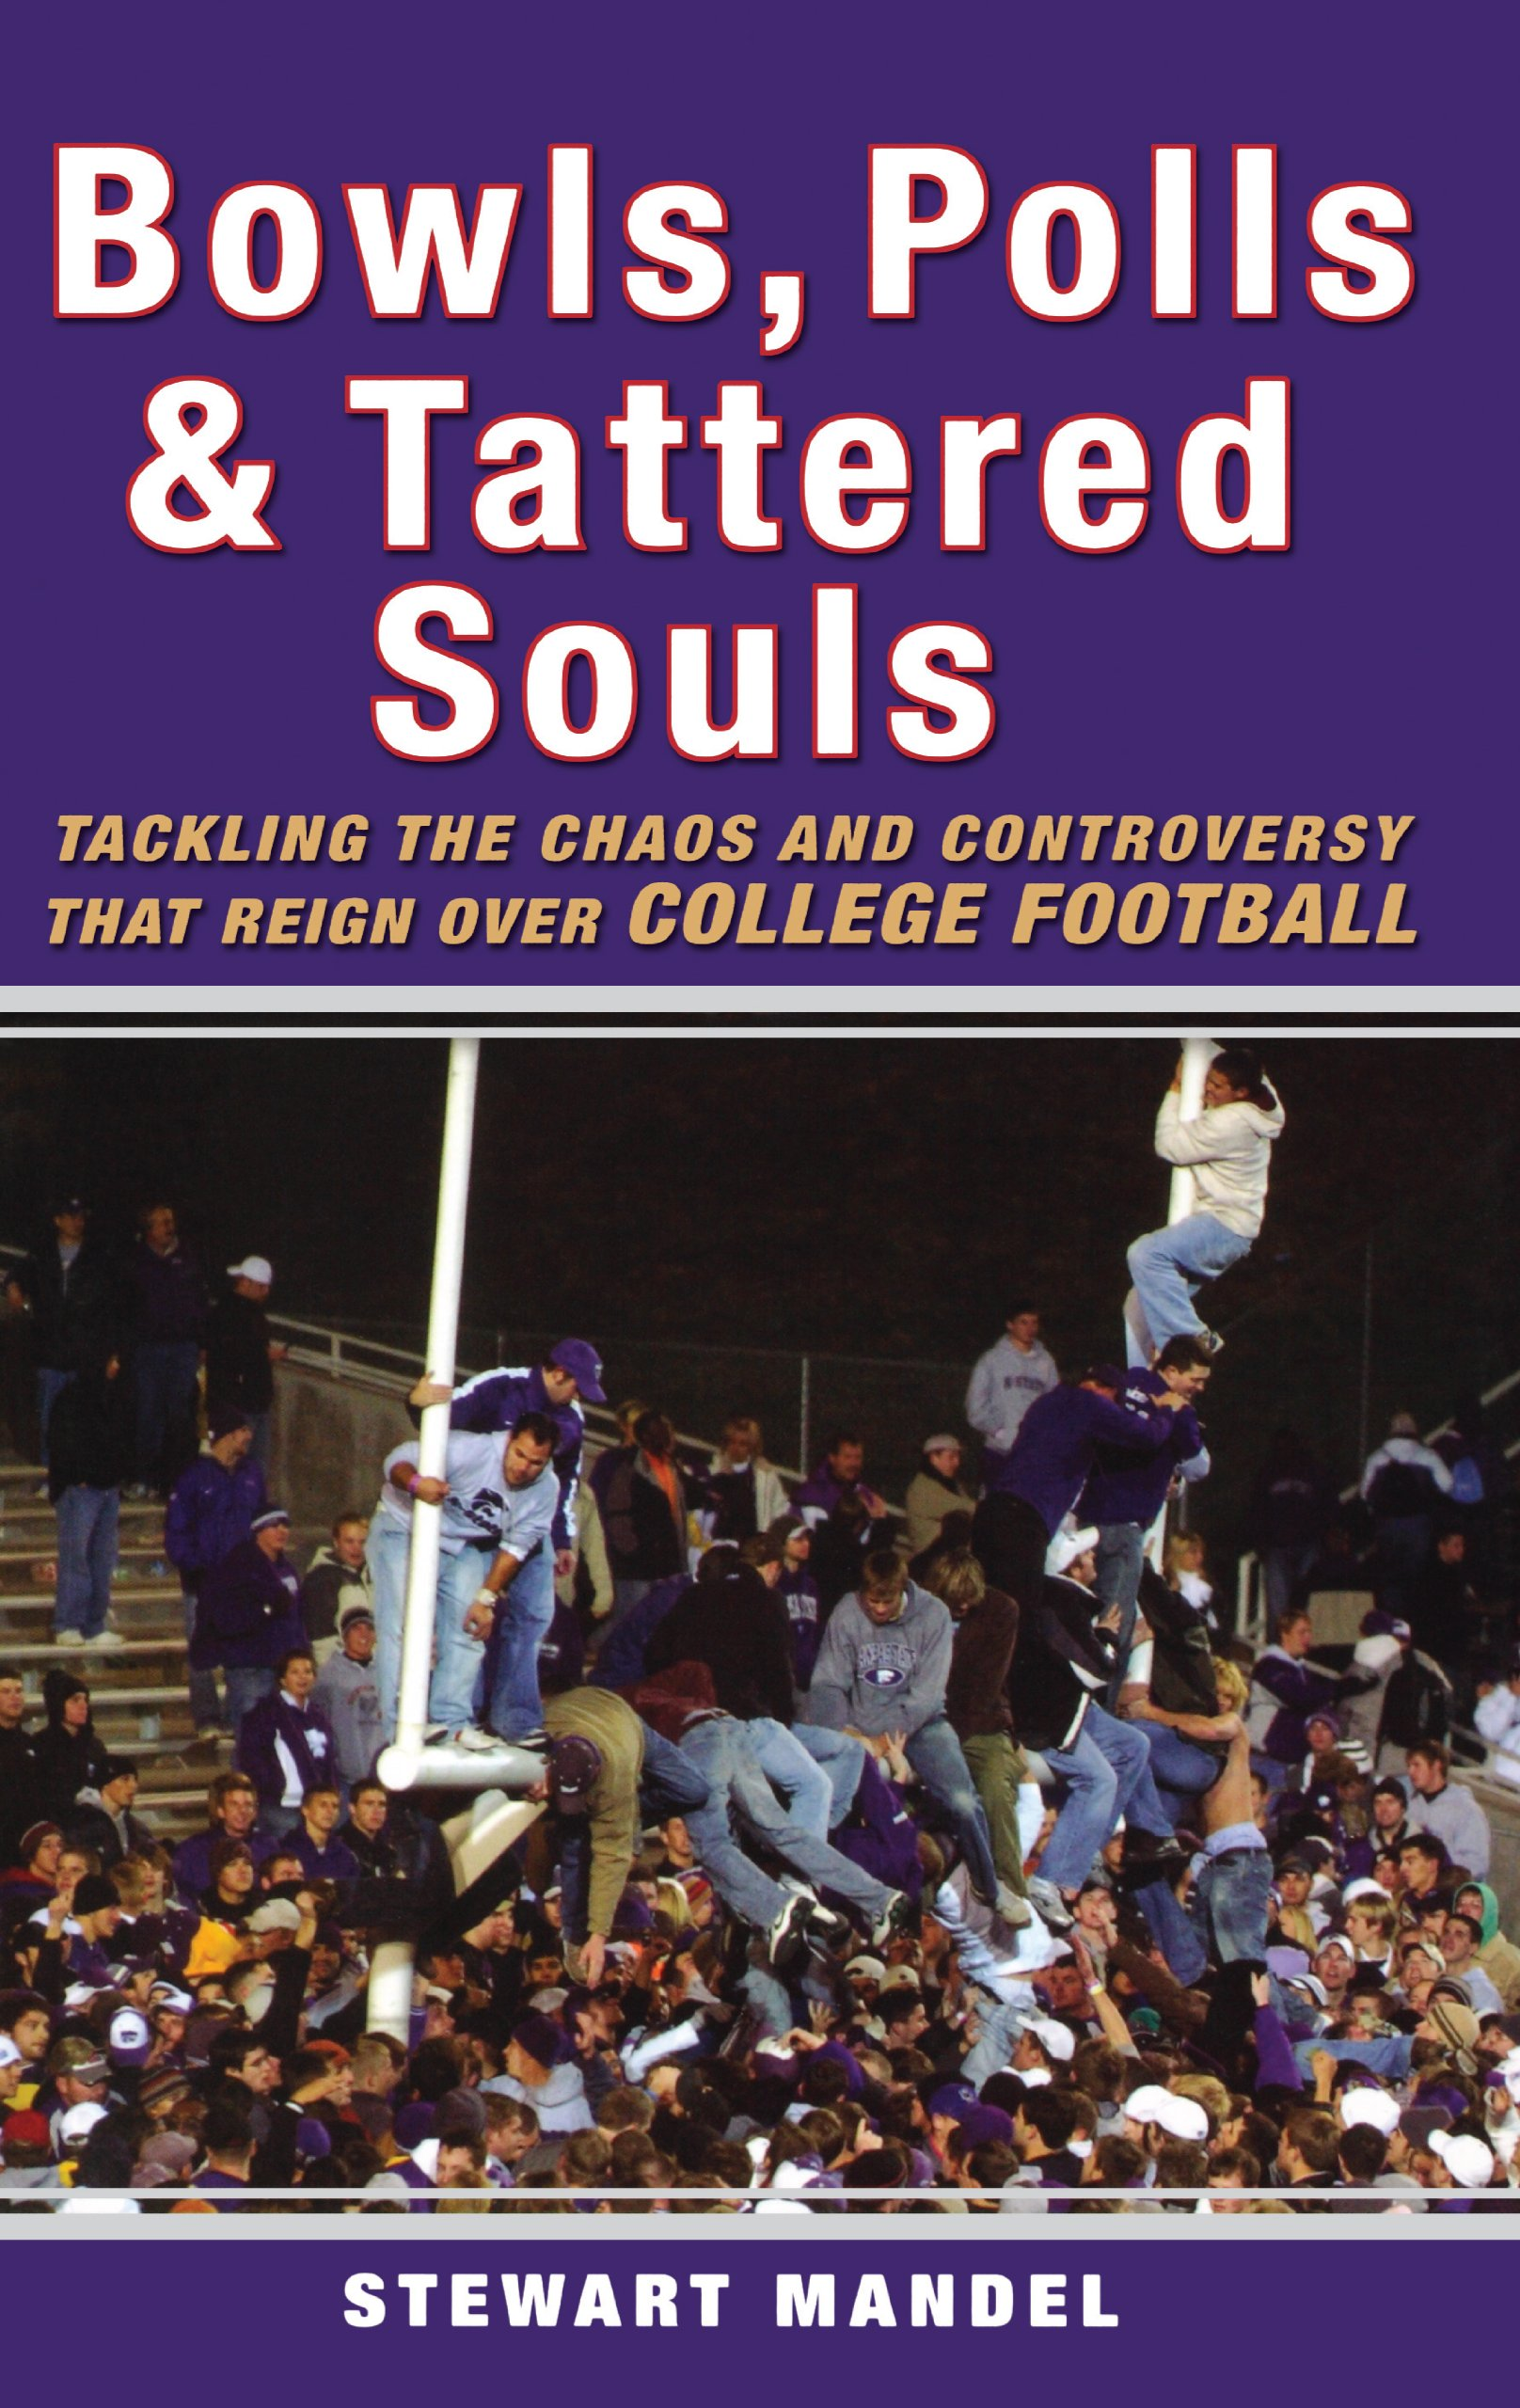 Bowls, Polls, and Tattered Souls: Tackling the Chaos and Controversy that Reign Over College Football pdf epub